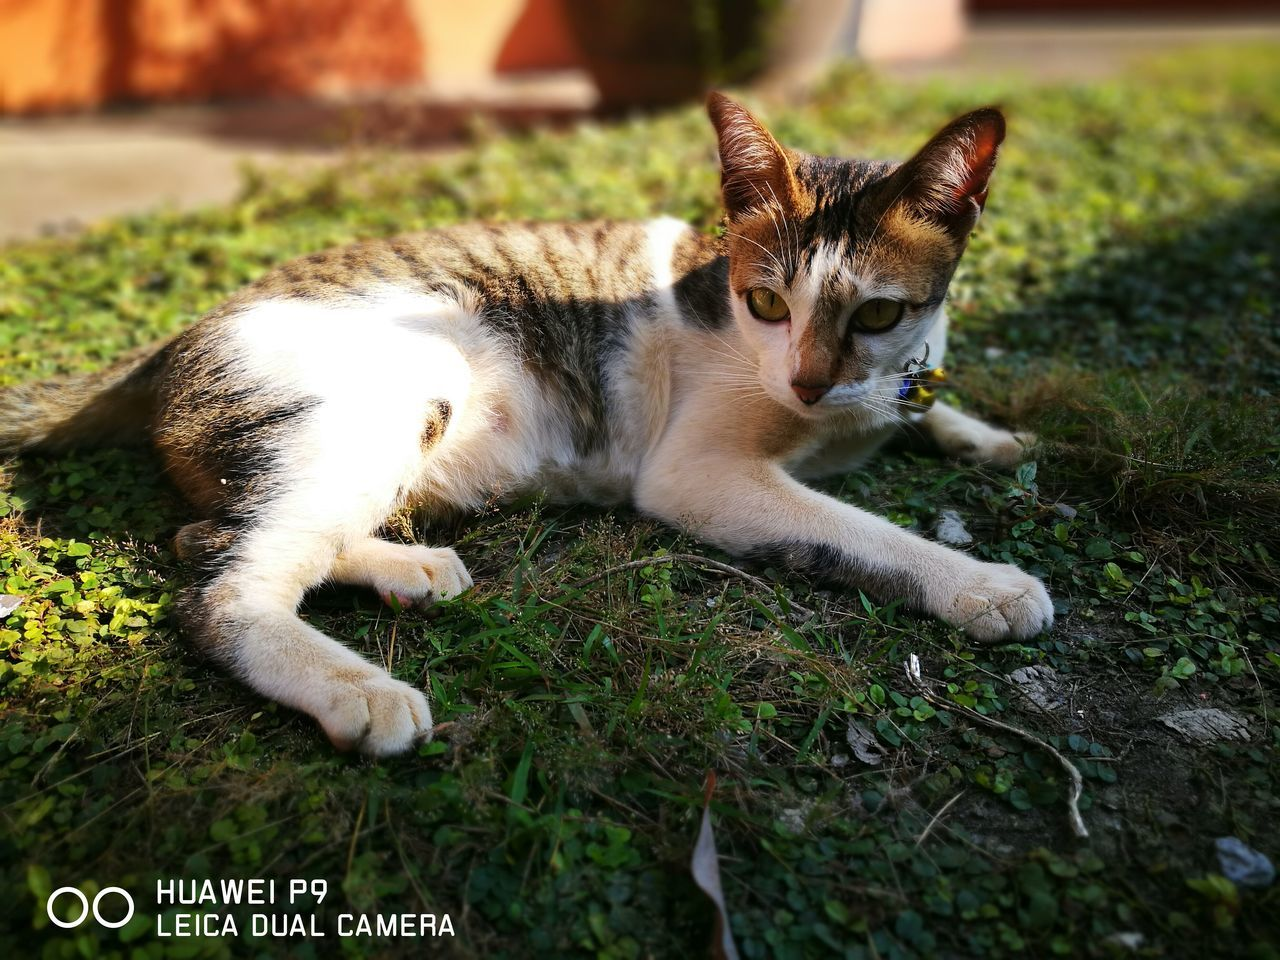 pets, domestic animals, animal themes, domestic cat, one animal, mammal, feline, lying down, grass, day, outdoors, no people, close-up, nature